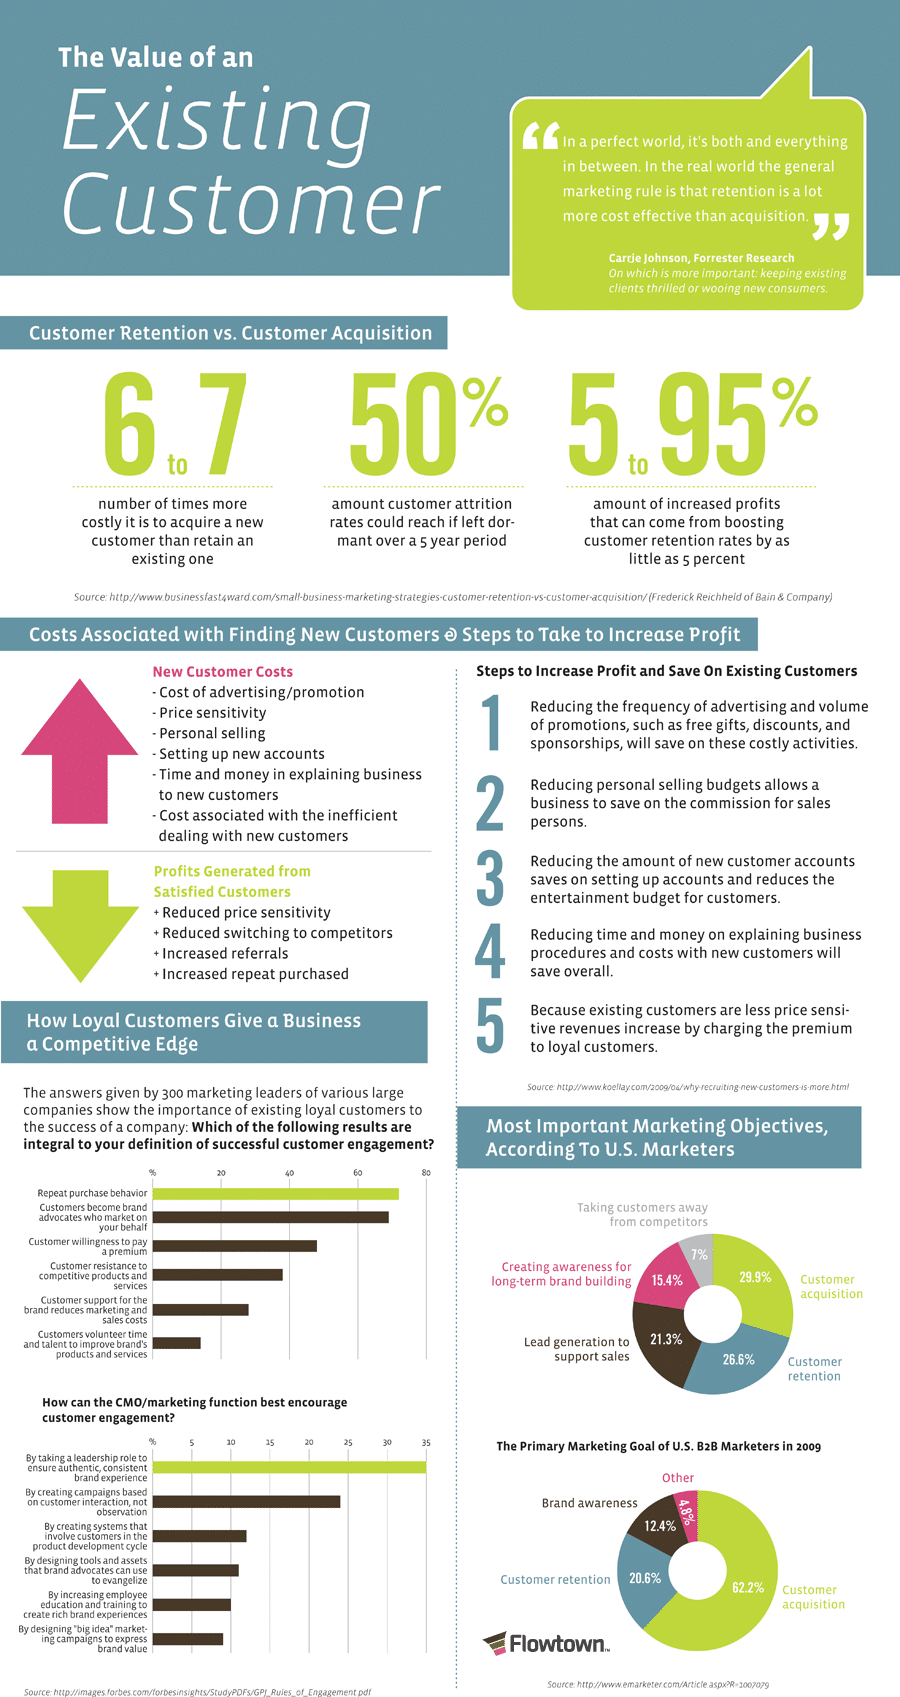 value of an existing customer - infographic